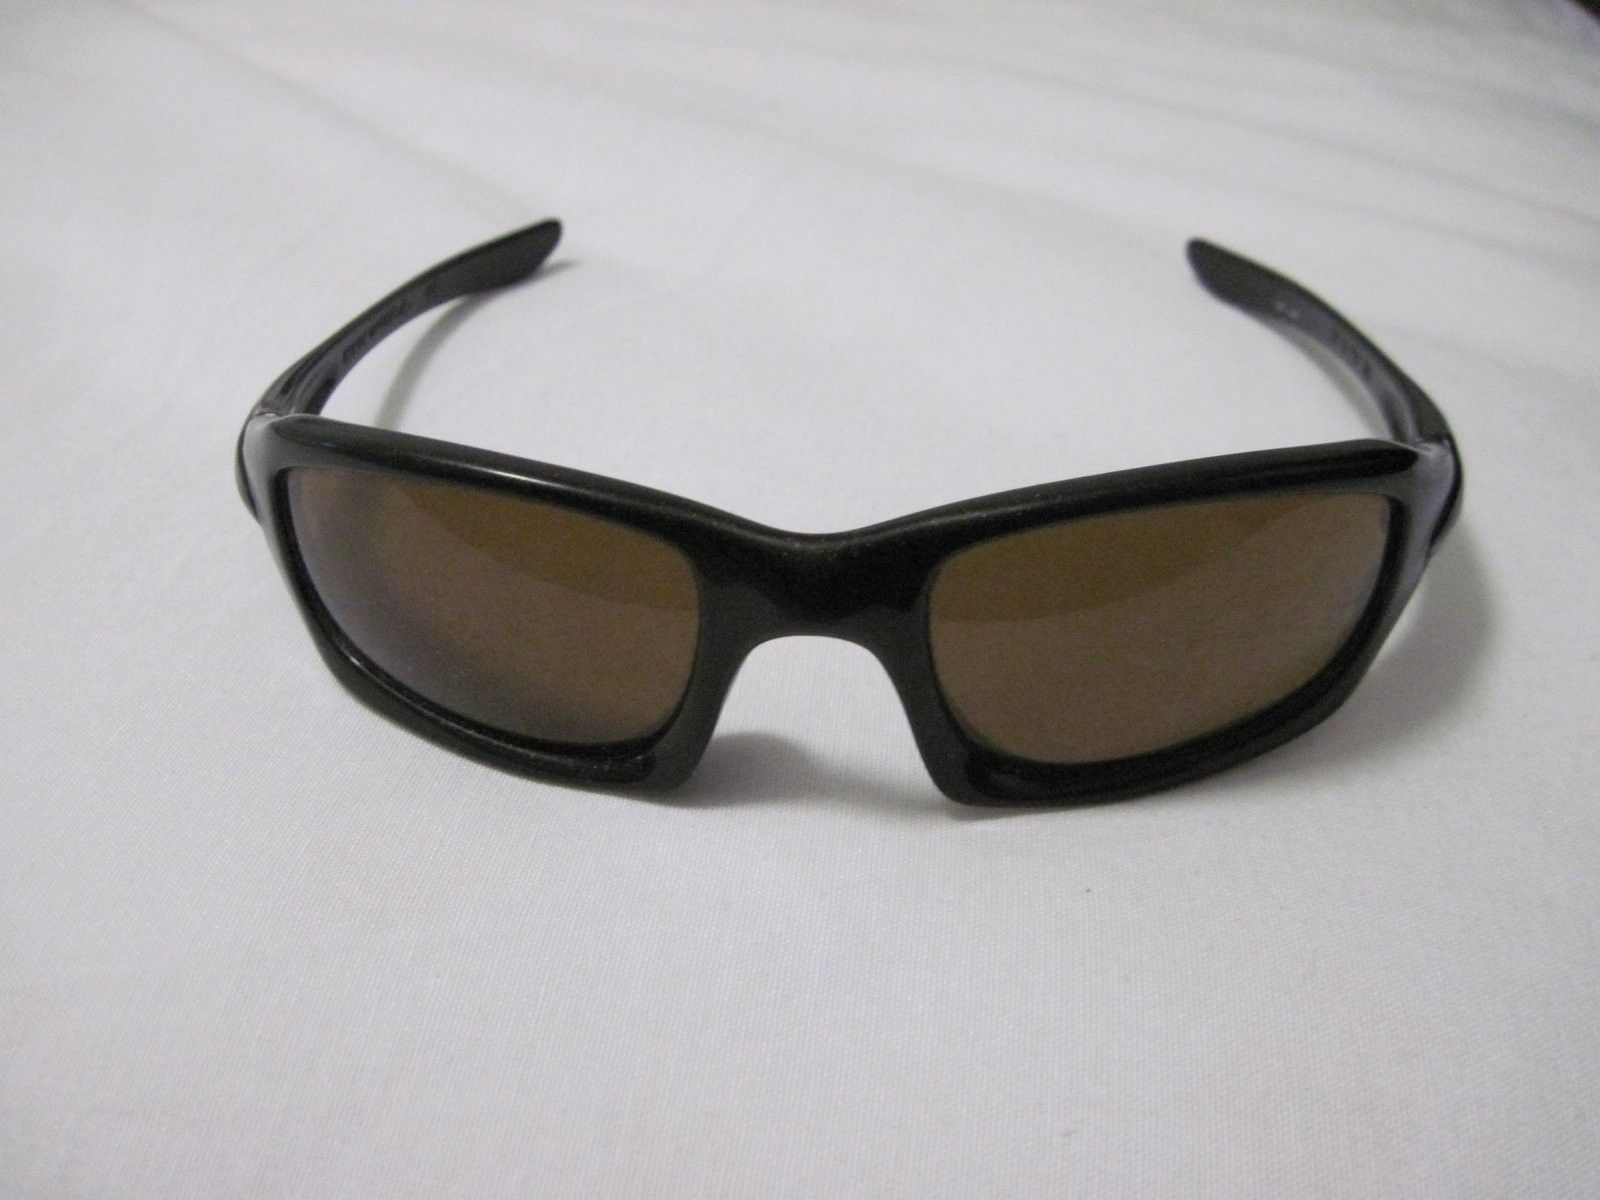 Need Help Identifying What Model Sunglasses - IMG_1409.JPG